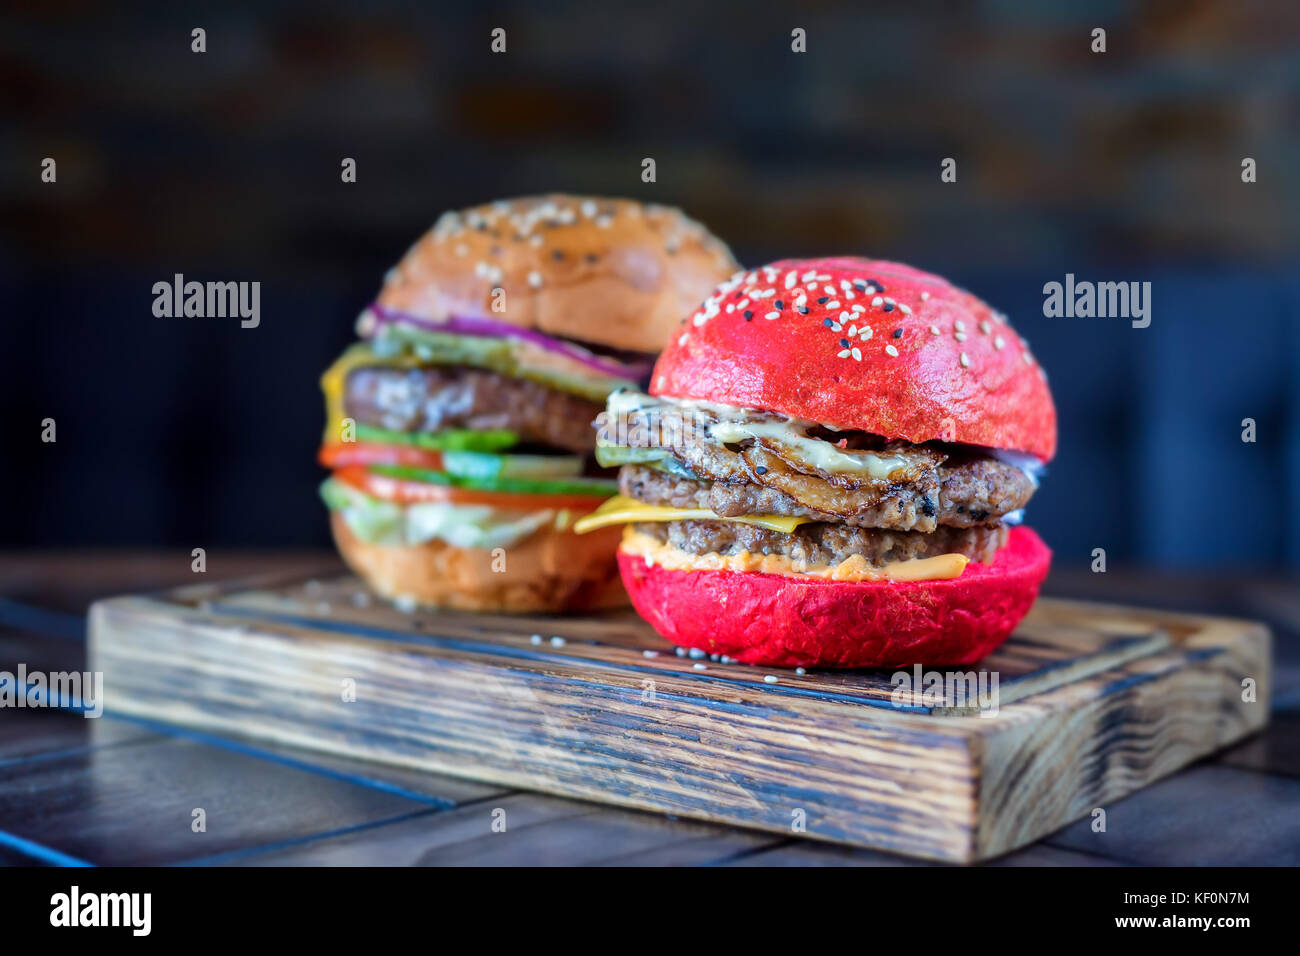 Two different restaurant burgers on wooden board - Stock Image